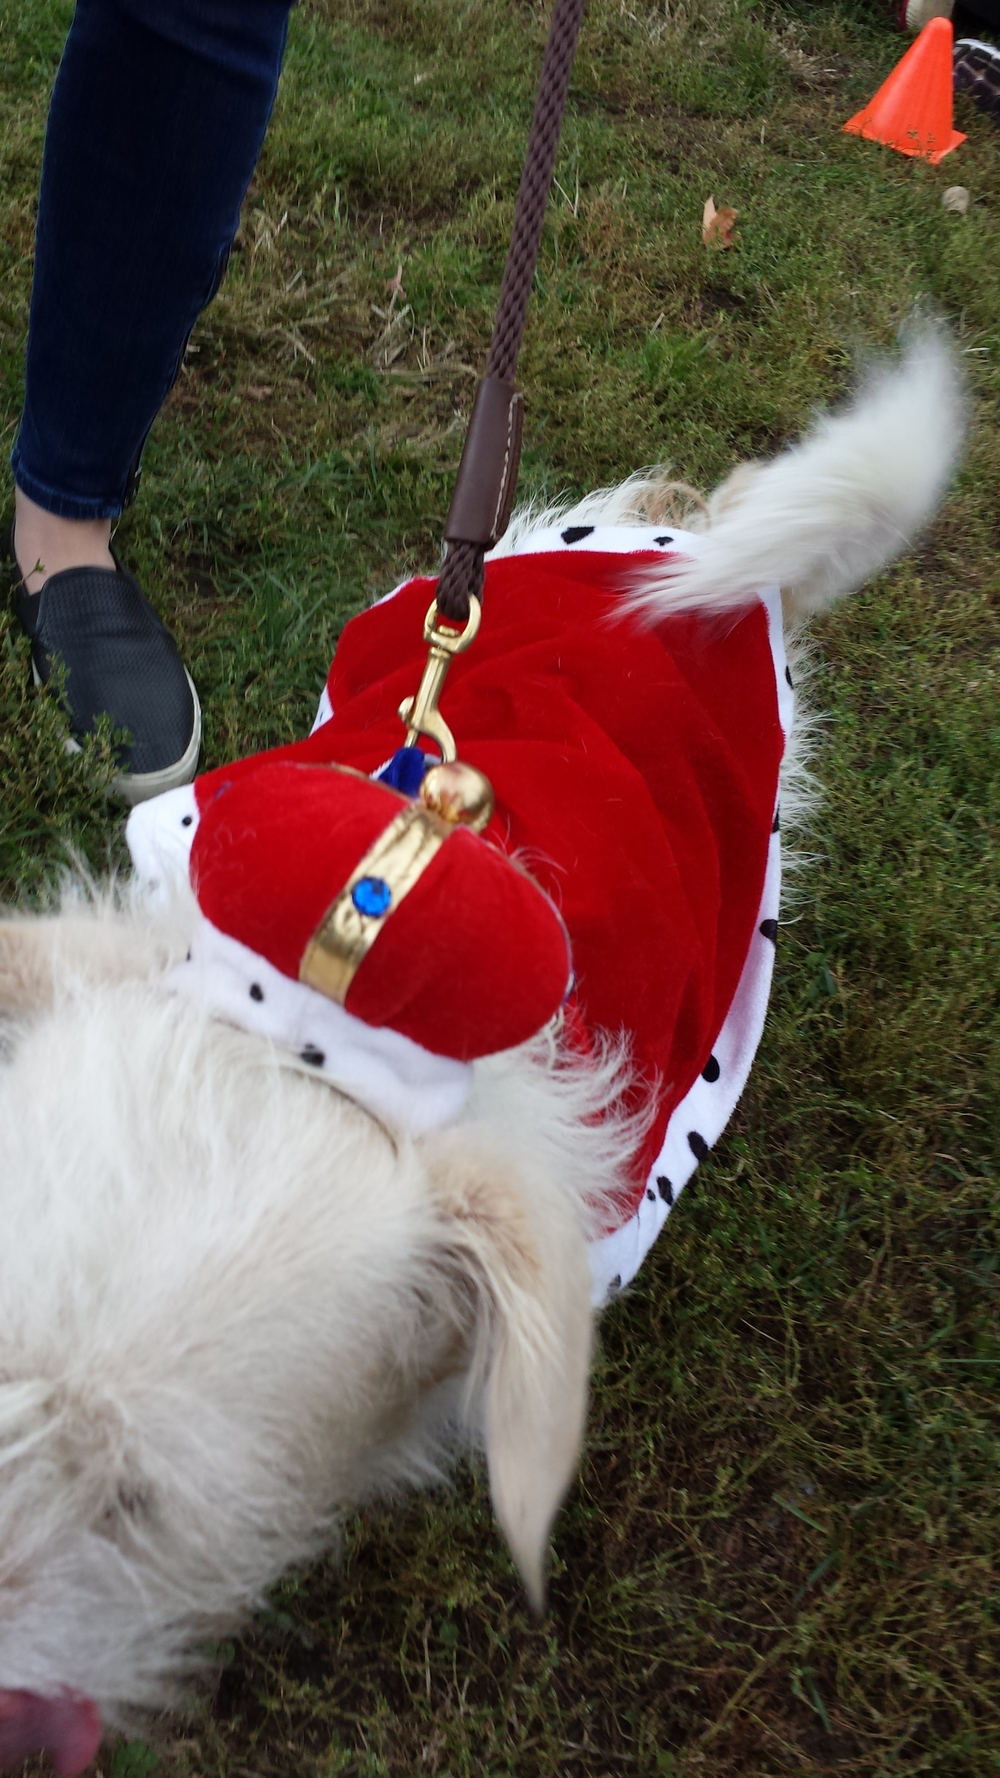 The King (Elroy) came in fourth and won a $50 toward daycare or boarding at Cheeky Dog Daycare.